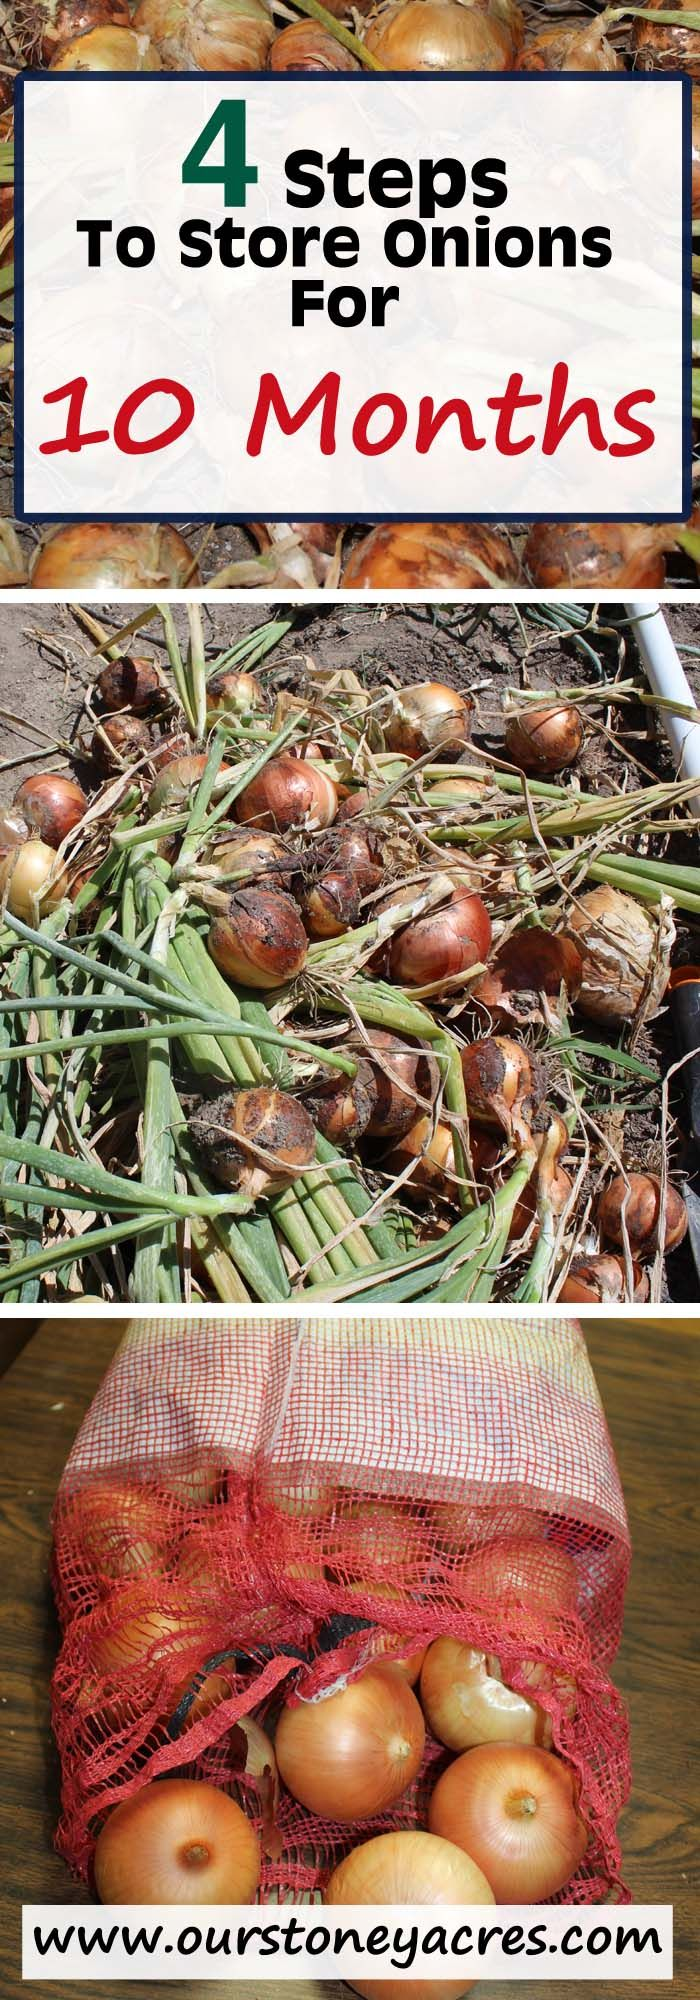 Curing and storing onions for 10 months or more isn't as hard as you might think!  Choose the right variety and follow these steps and you can have your garden grown onions for 10 months or more!